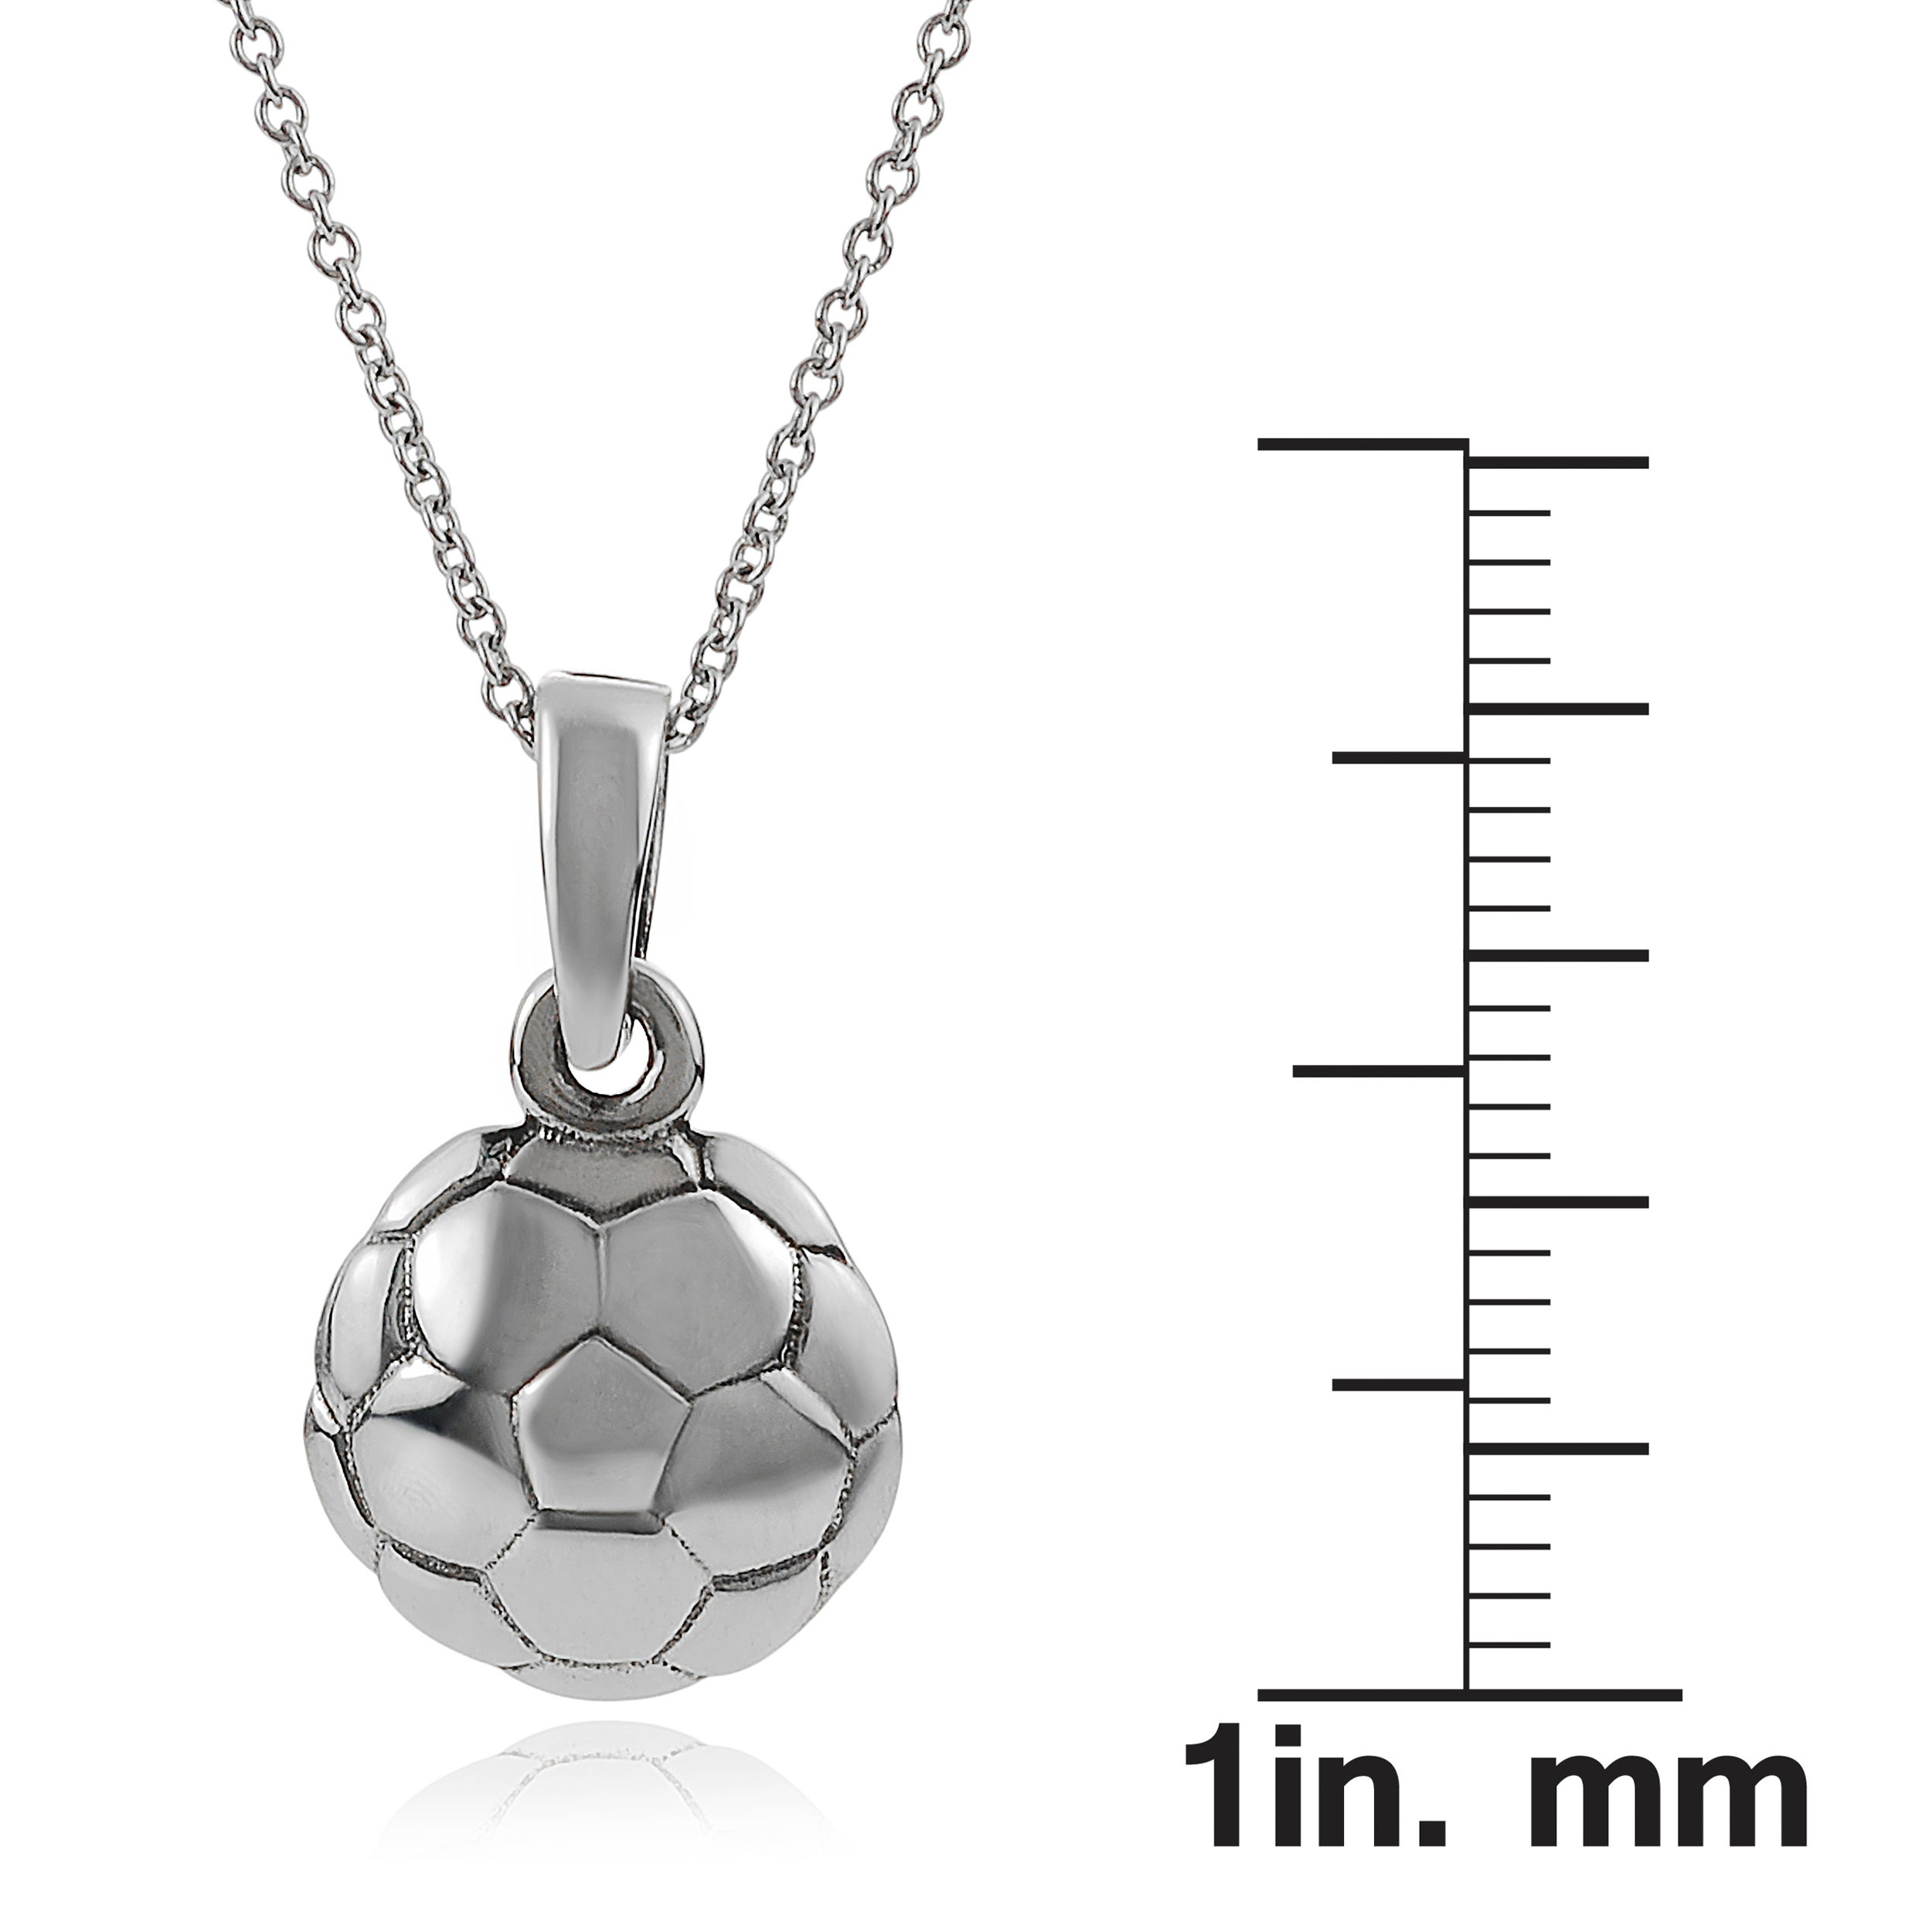 gjrf il team p dad fullxfull coach gift keychain brother charm chain pendant soccer key